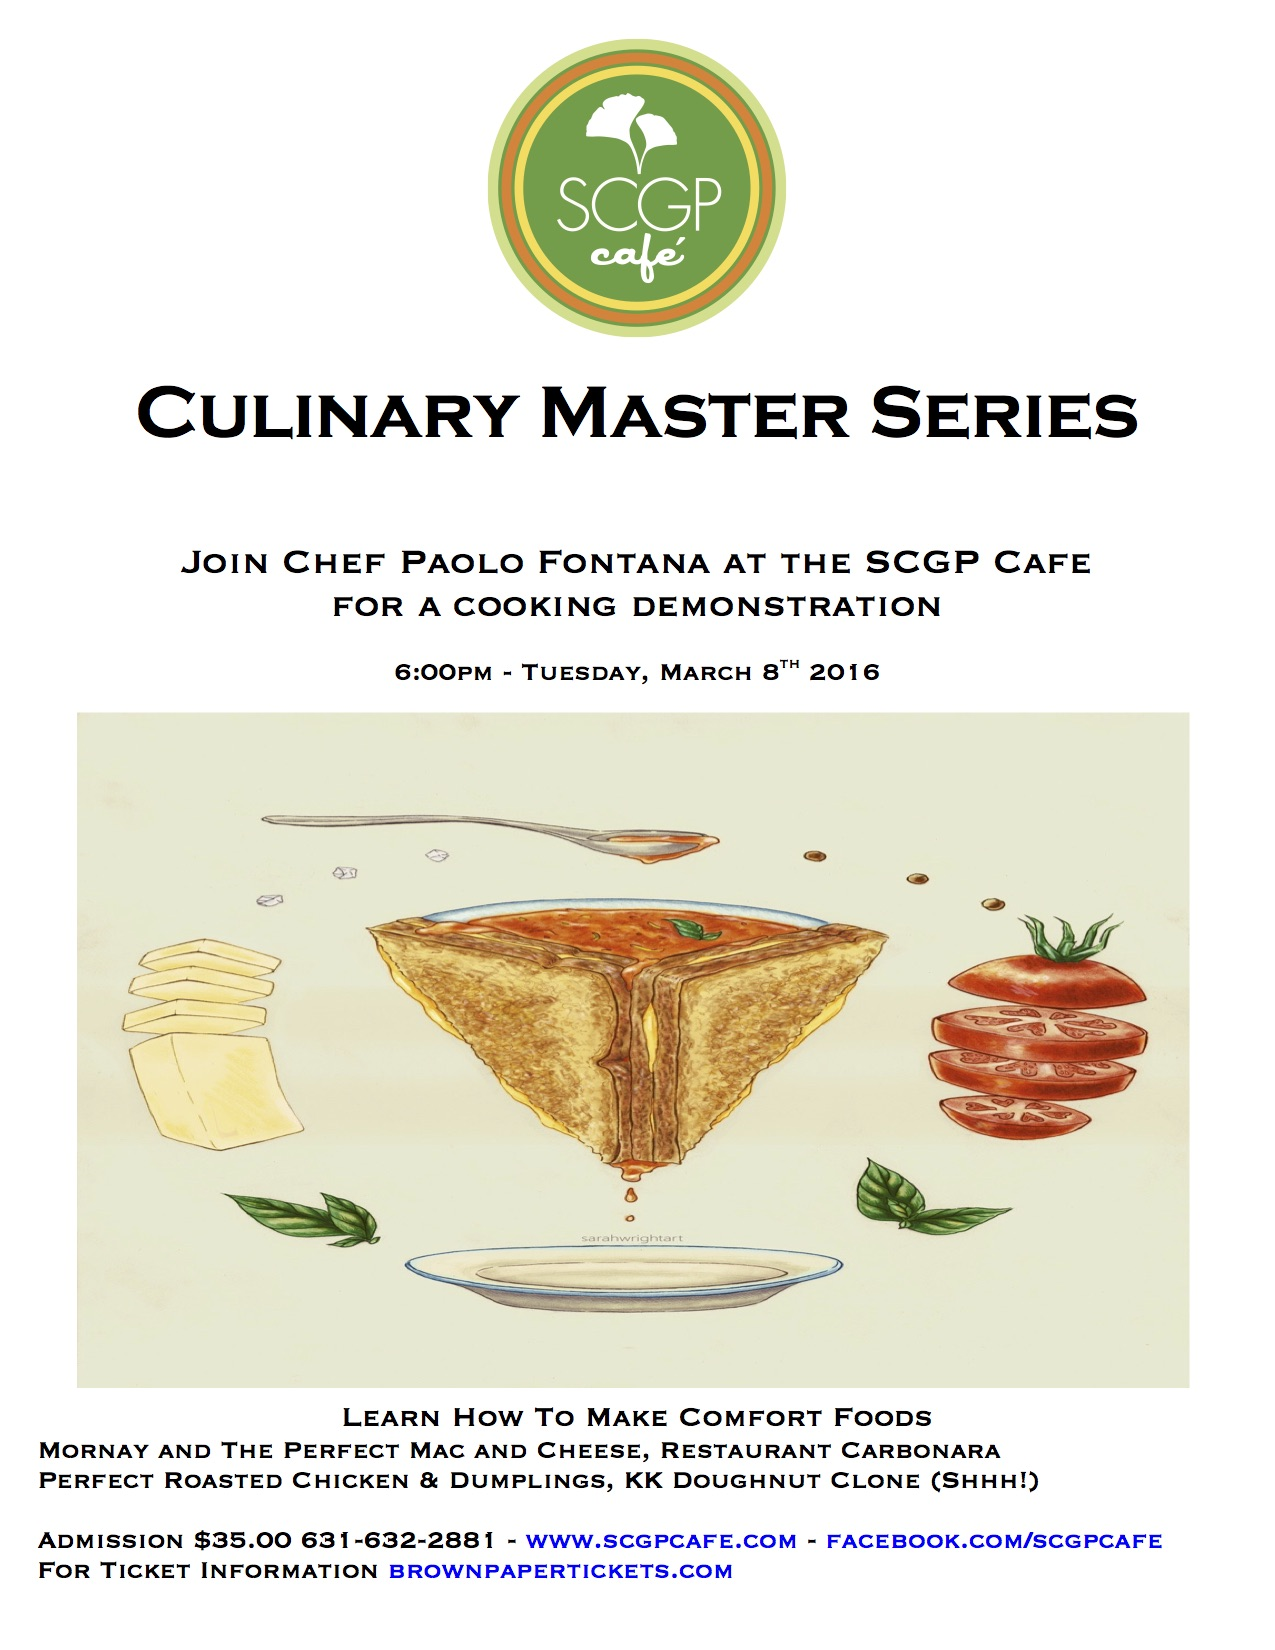 Culinary Master Series Comfort Foods 3.8.16 V1